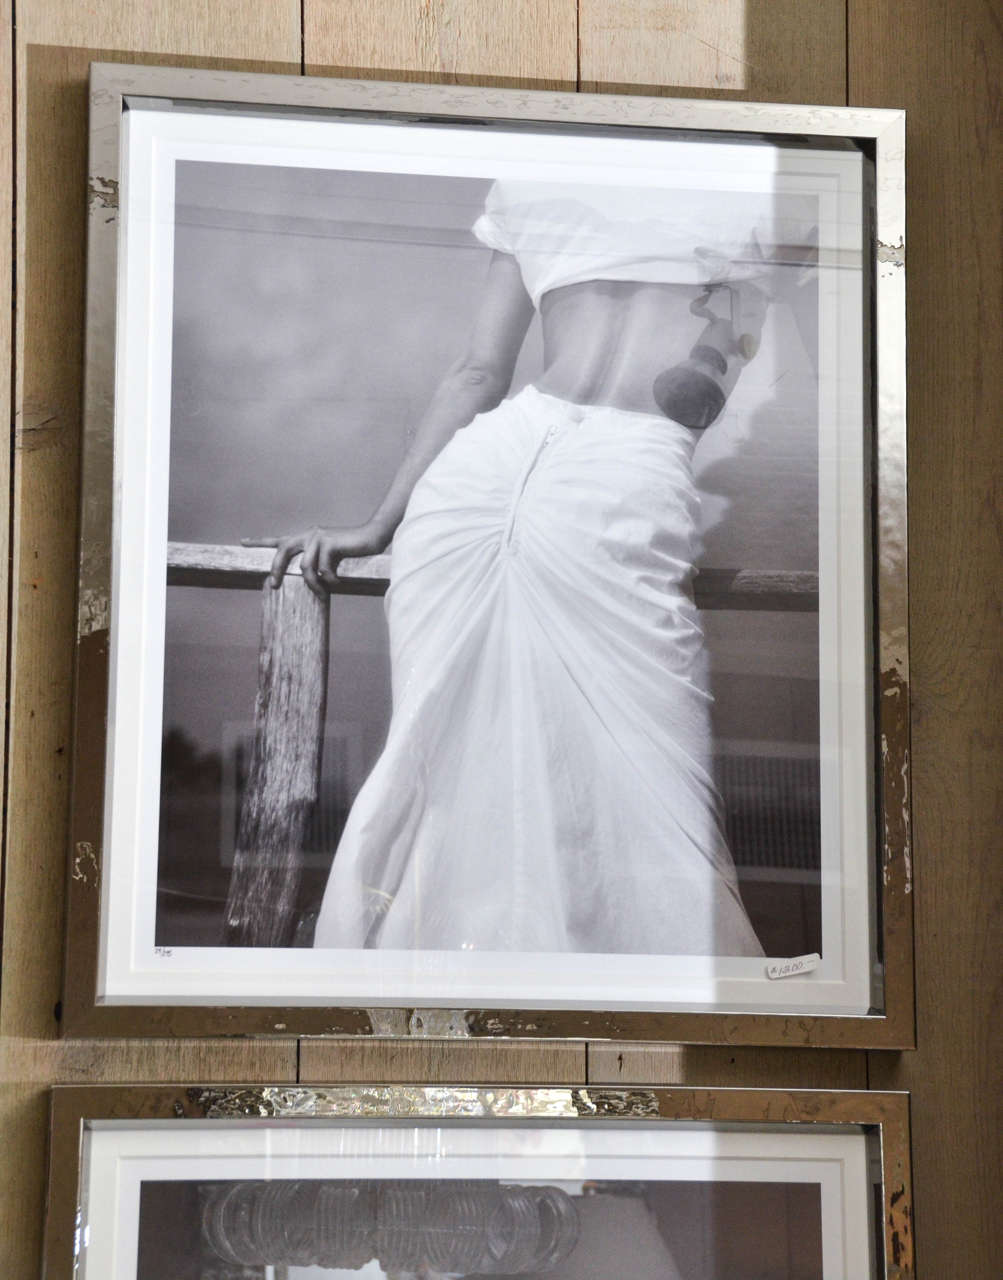 Fashion Photographs by Willie Christie in Silvered Metal Frames 4